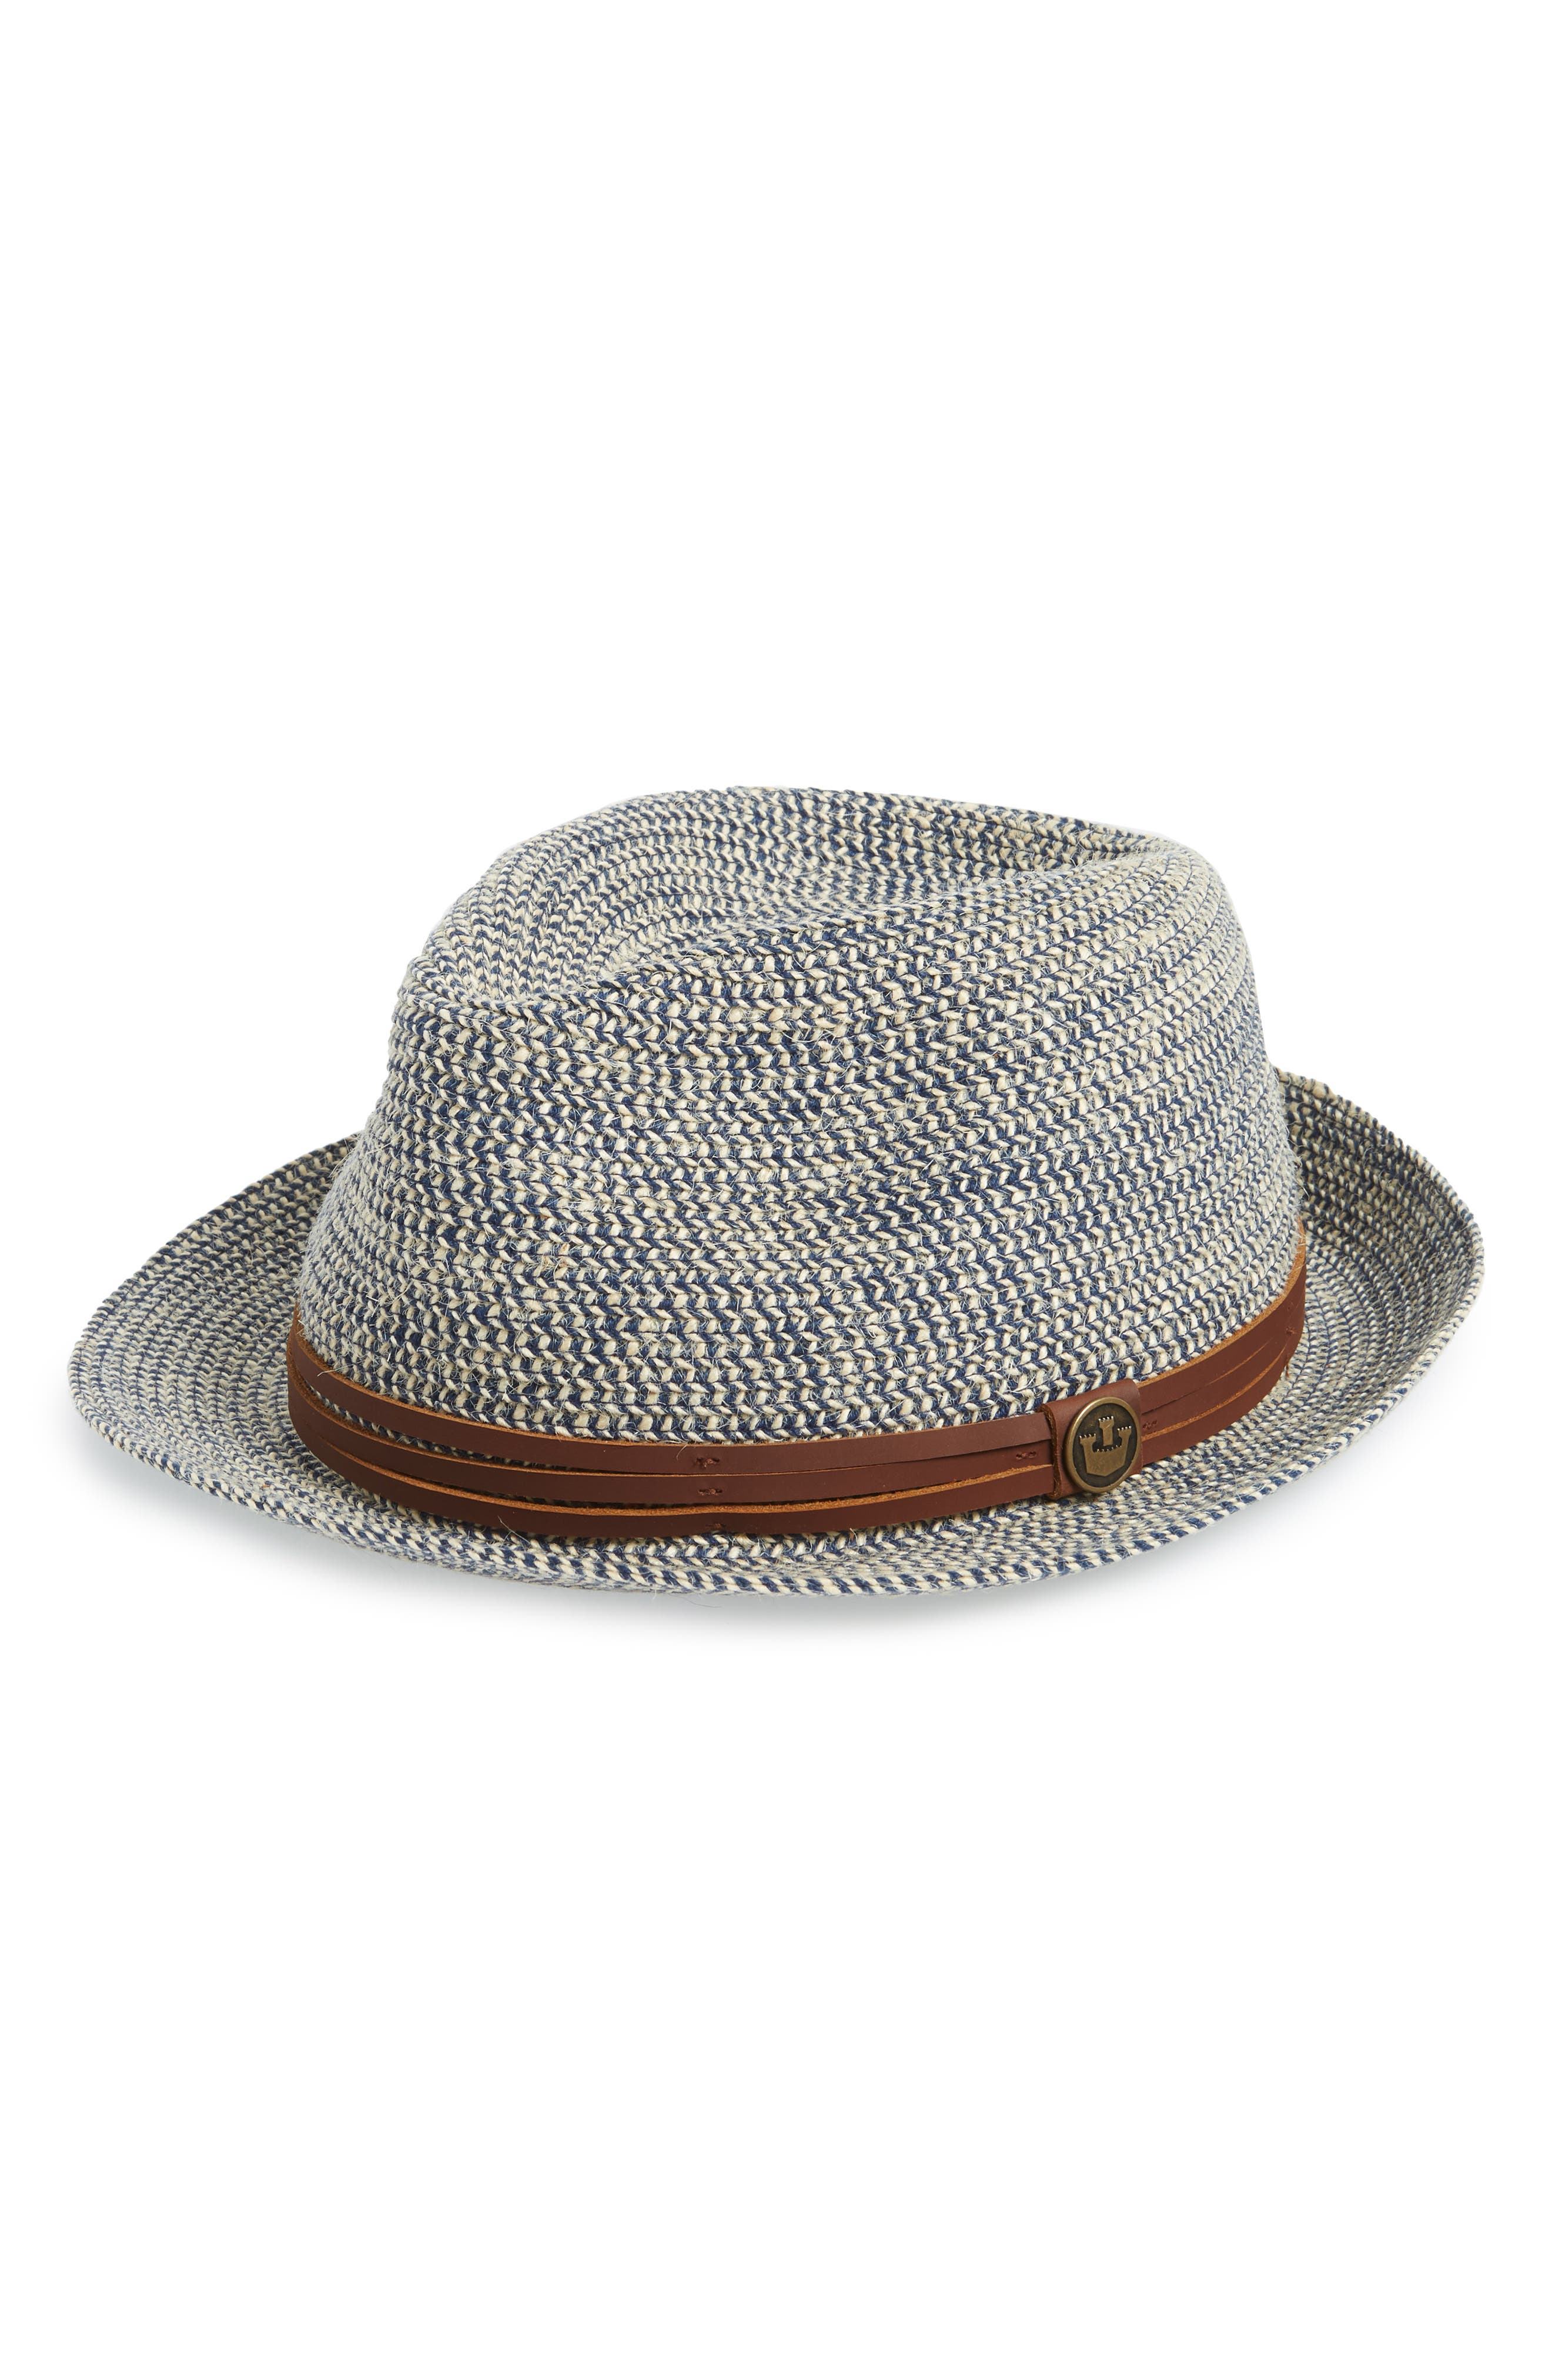 Laying Low Porkpie Hat,                             Main thumbnail 1, color,                             Navy